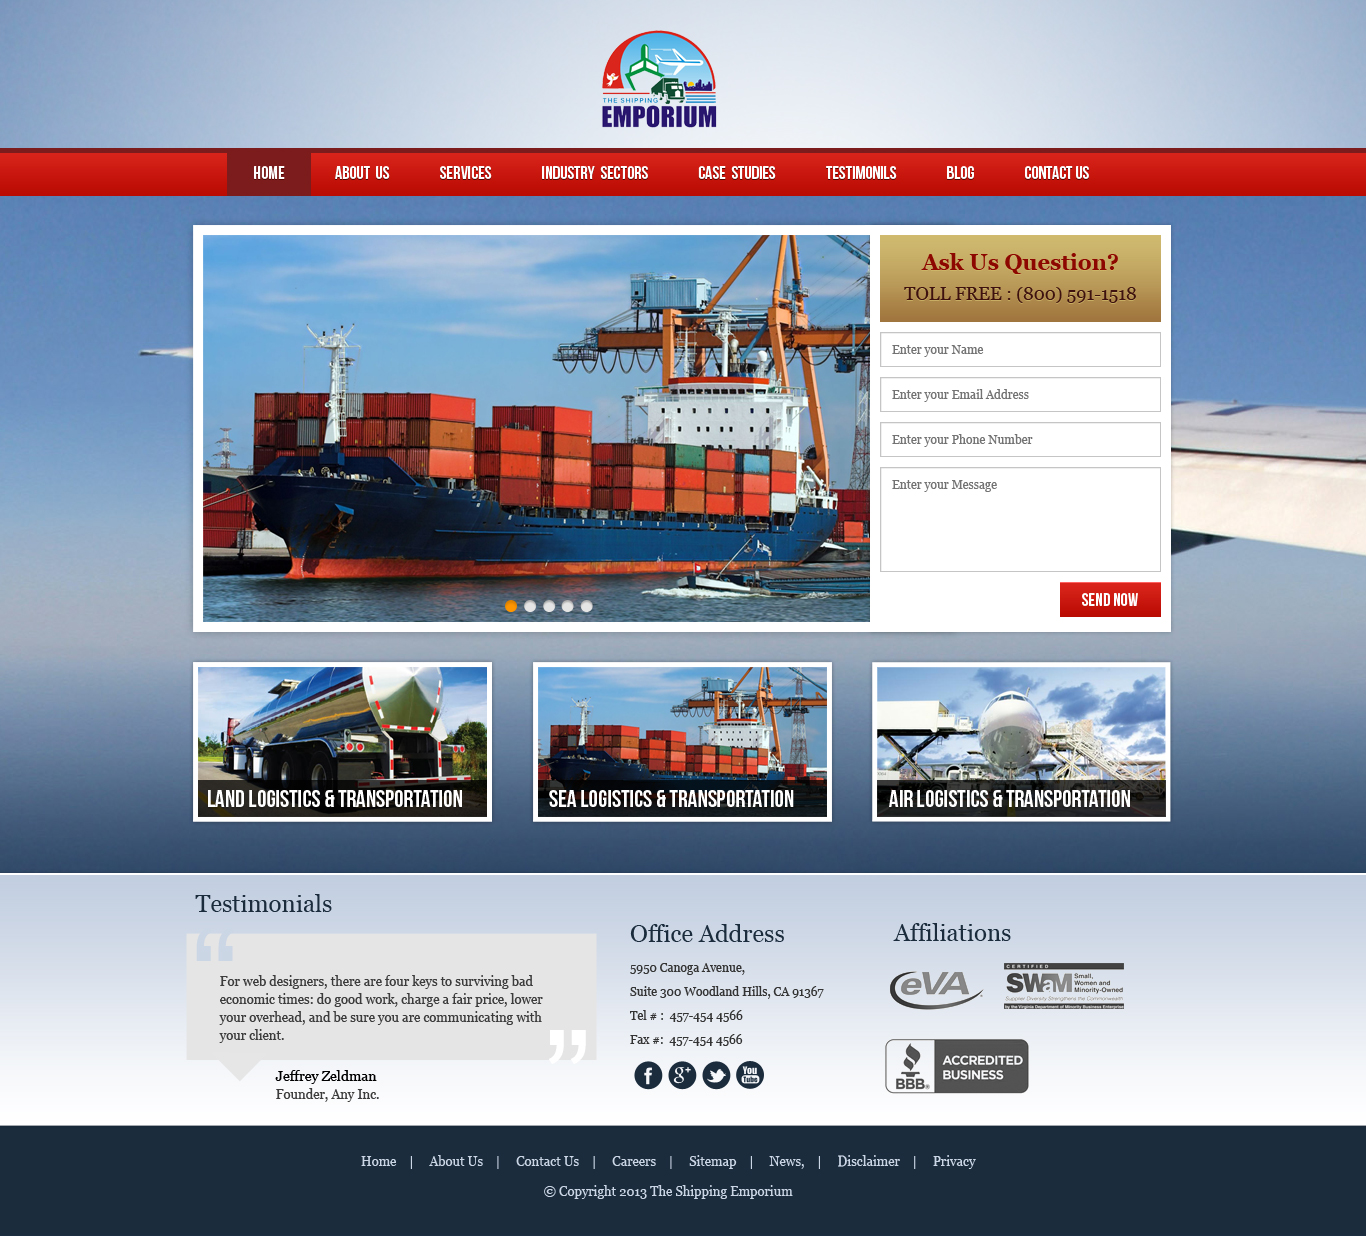 Web Page Design by Emad A Zyed - Entry No. 23 in the Web Page Design Contest Artistic Web Page Design for The Shipping Emporium Website.